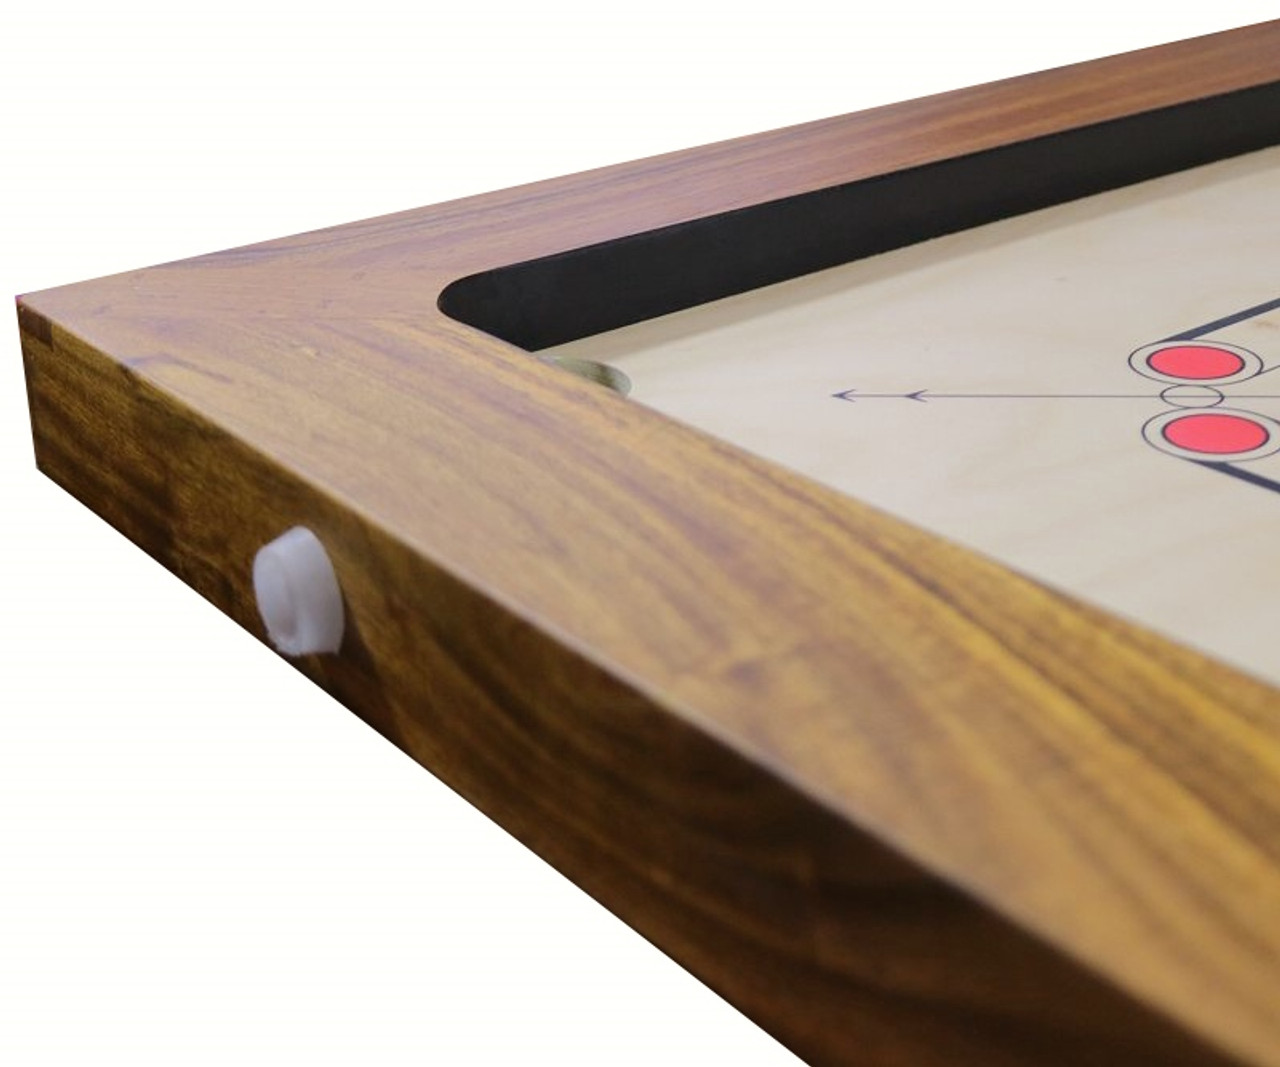 Tournament Carrom Board L.E. ACF/ICF Regulation Complete with Regulation Stand, Playing Accessories & FREE OFFERS